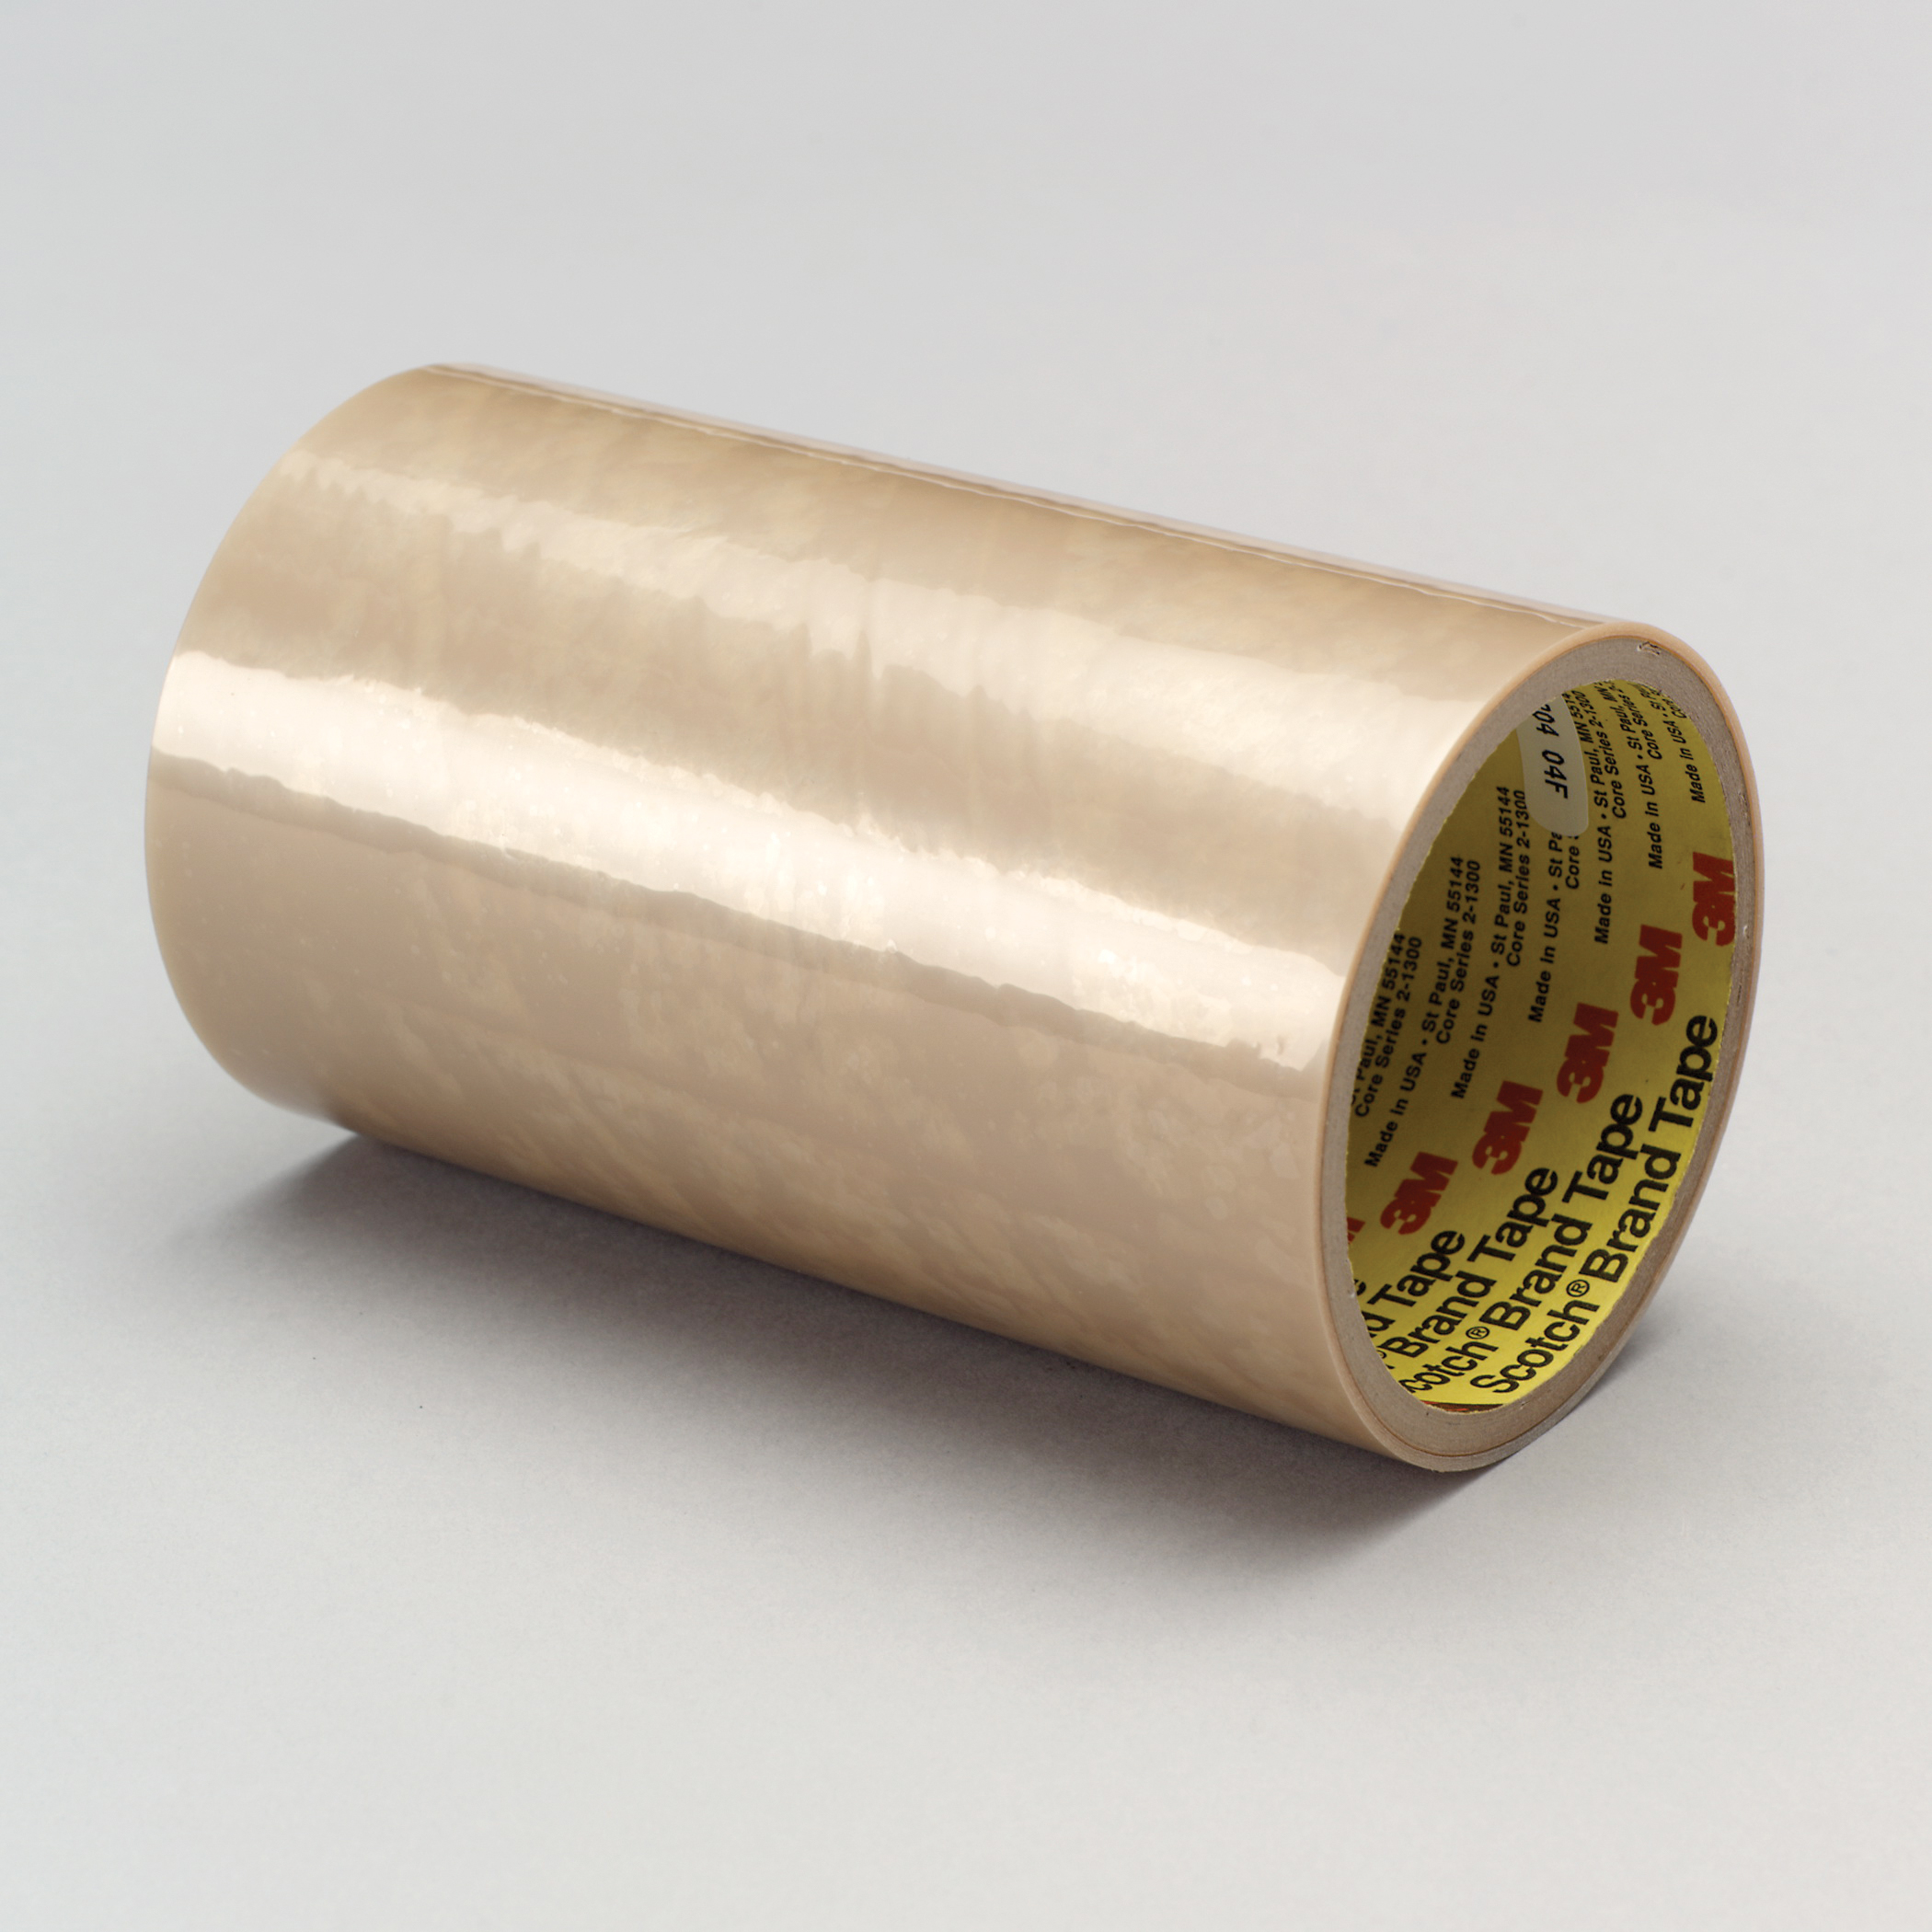 3M™ 021200-05573 336 Protective Tape, 2 in W x 144 yd Roll L, 1.5 mil THK, Transparent